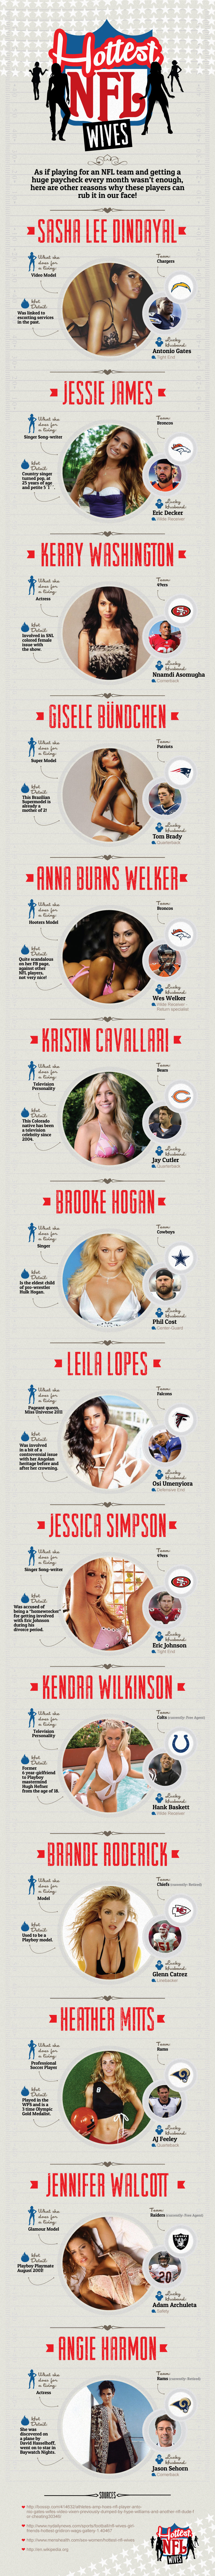 Hottest NFL Wives